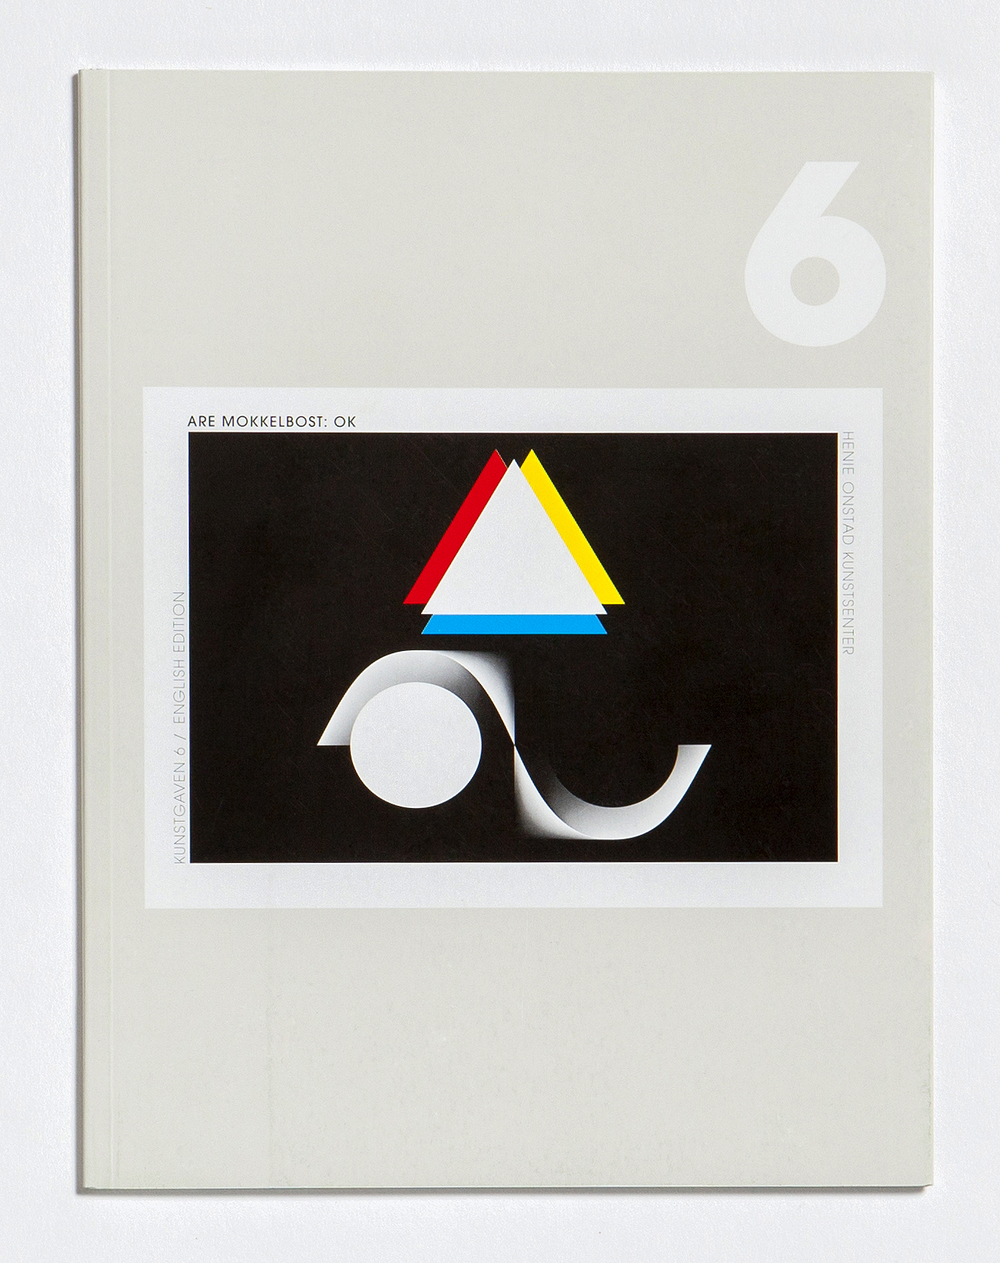 Catalog from the show, which was part of a series of shows funded by Sparebankstiftelsen. Design by Peder Bernhardt.